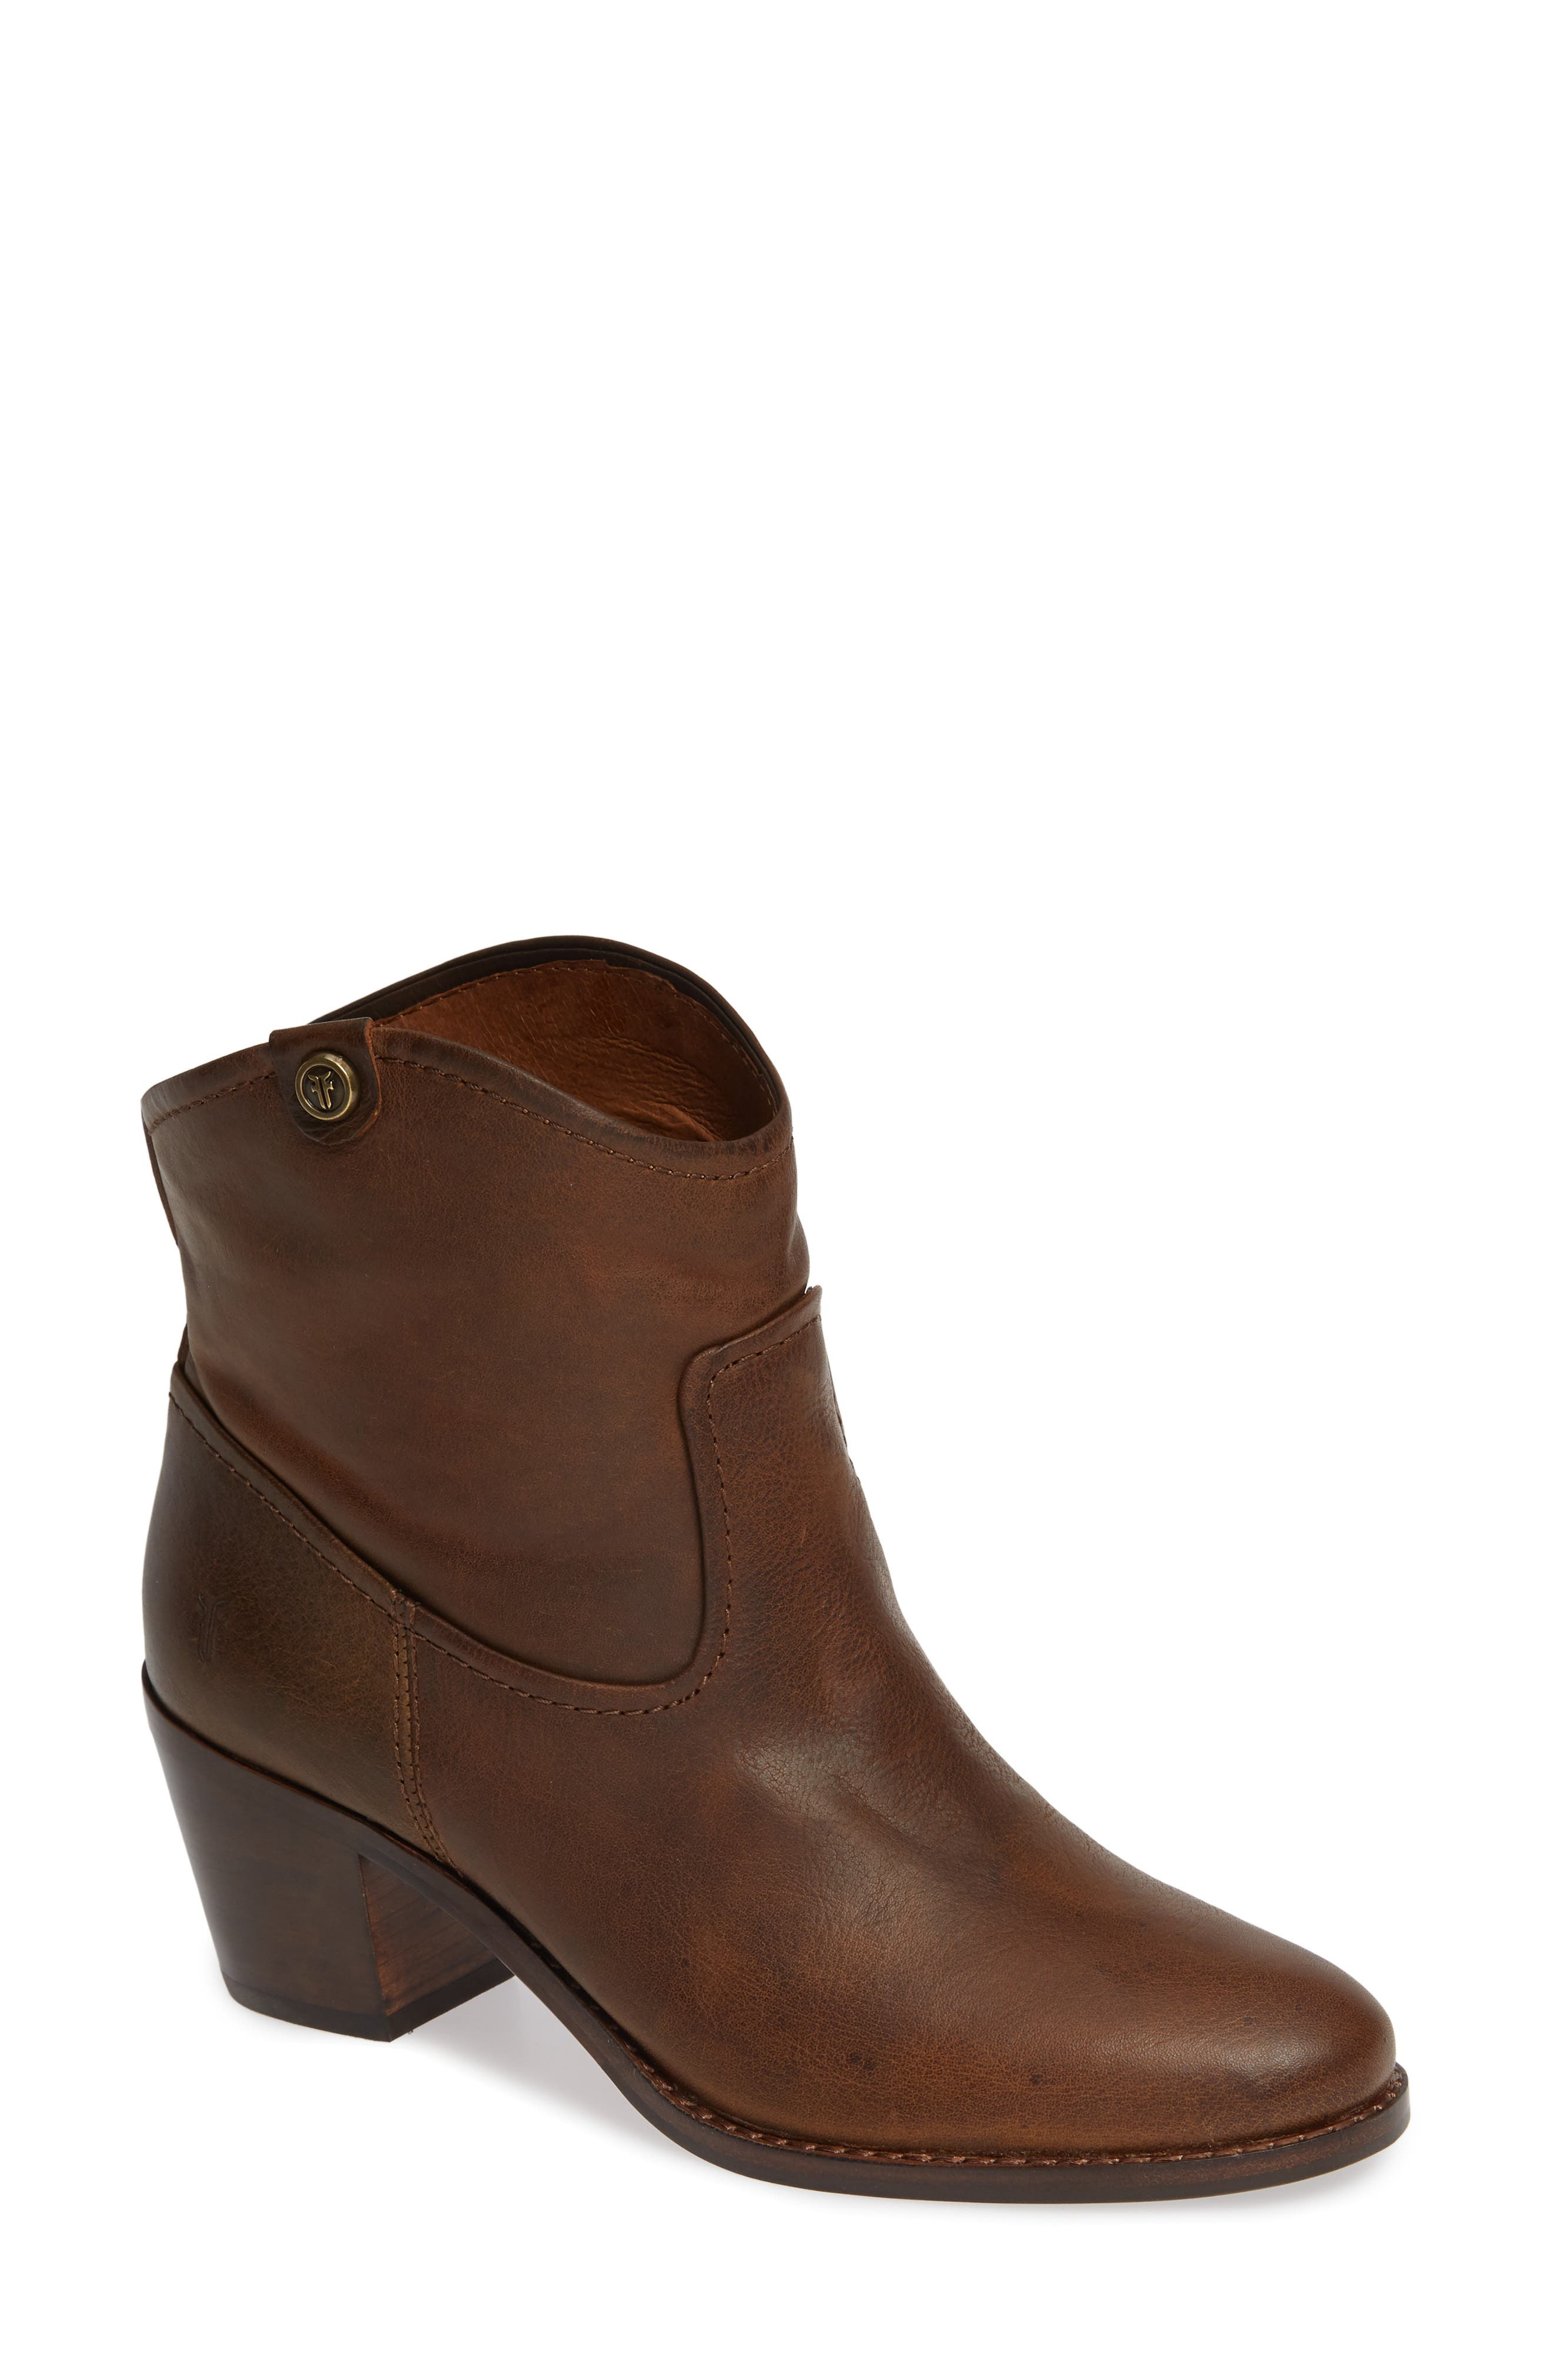 Frye Jolene Bootie, Brown